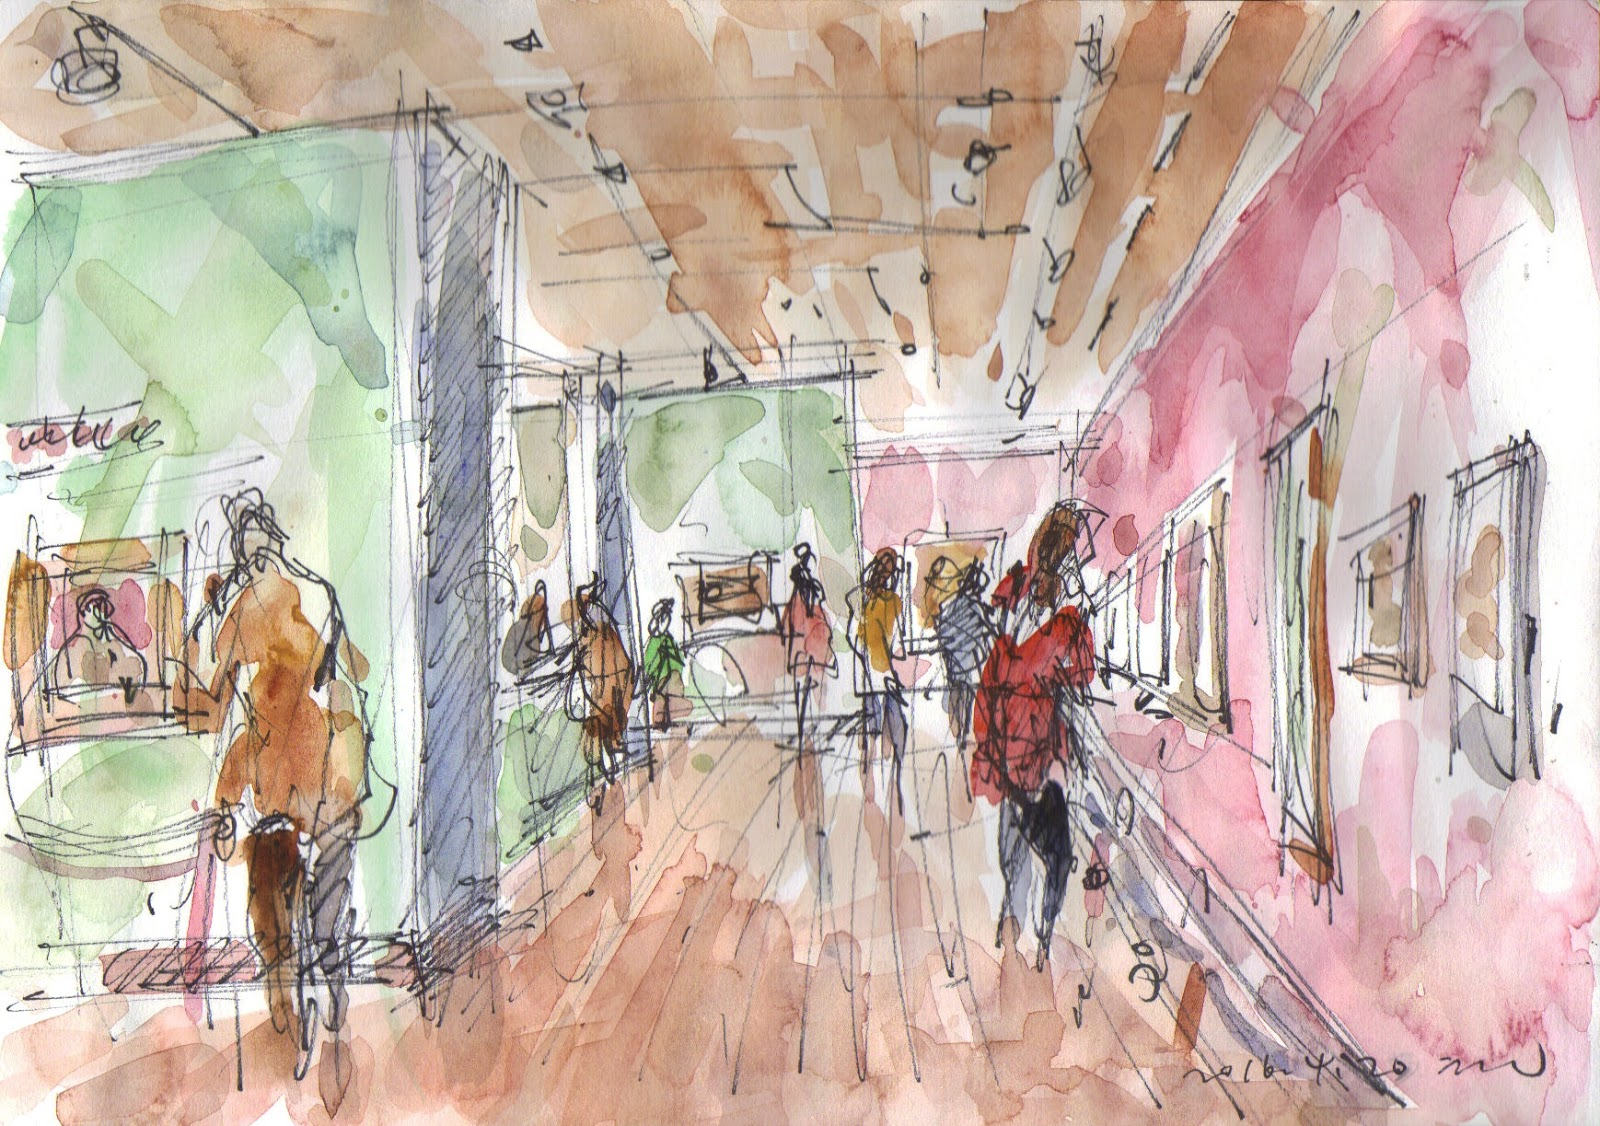 Exhibition Stall Sketch : Seoul urban sketchers sketches at deoksugung art museum